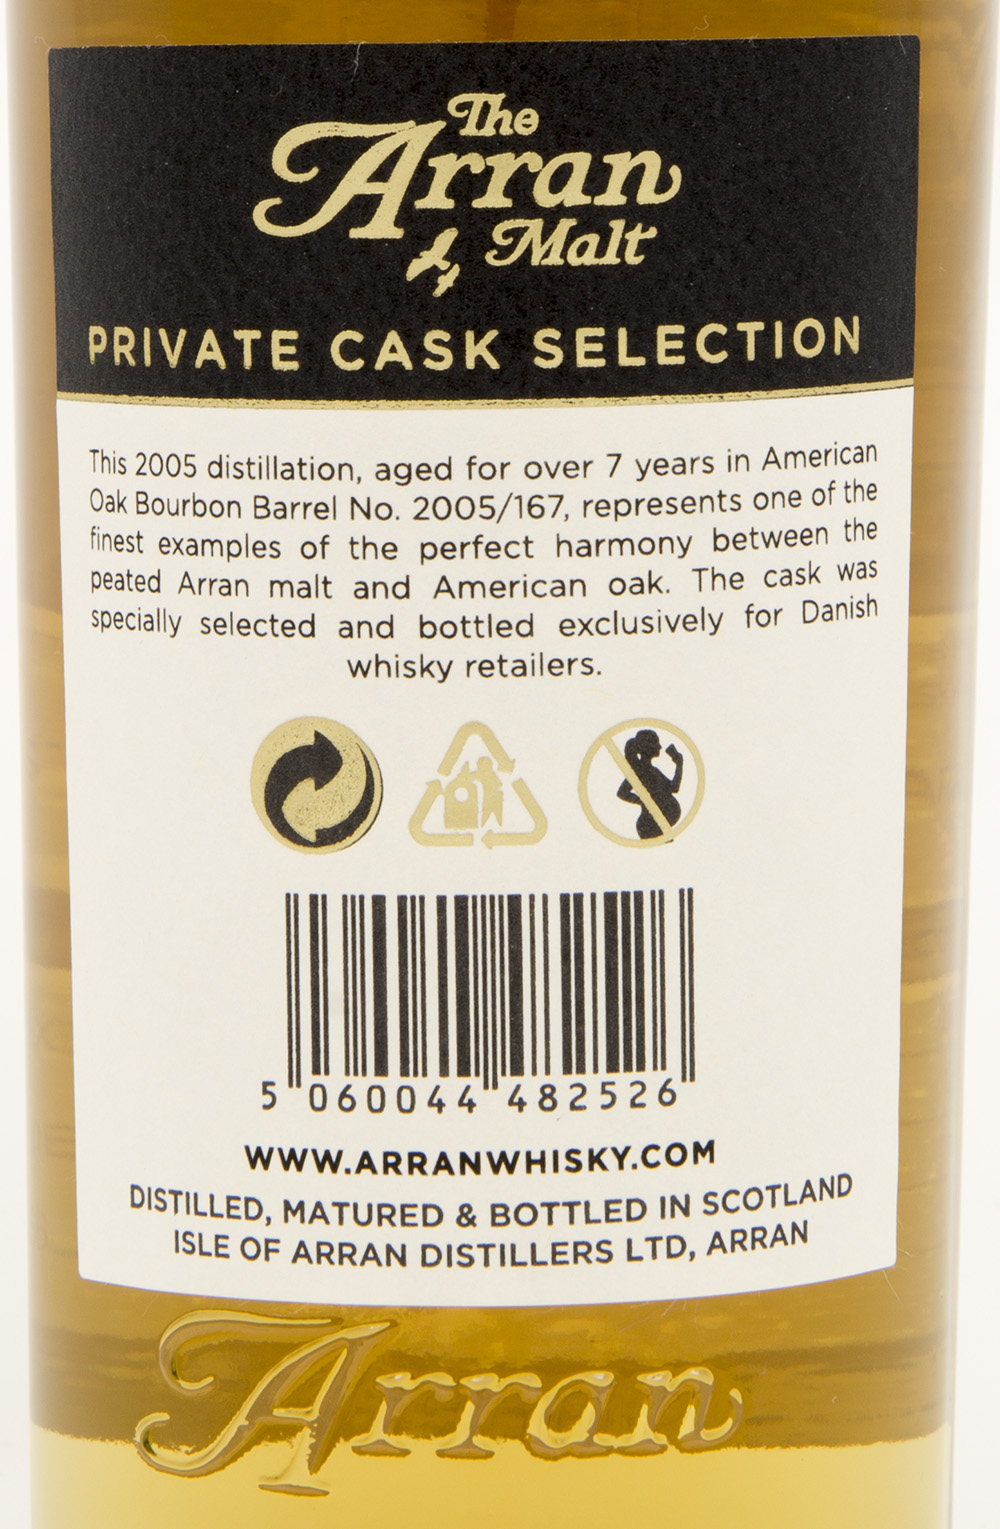 Billede: DSC_4823 - The Arran Malt - Private Cask - Danish Whisky Retailers The Peated Arran Cask Strength - back label.jpg